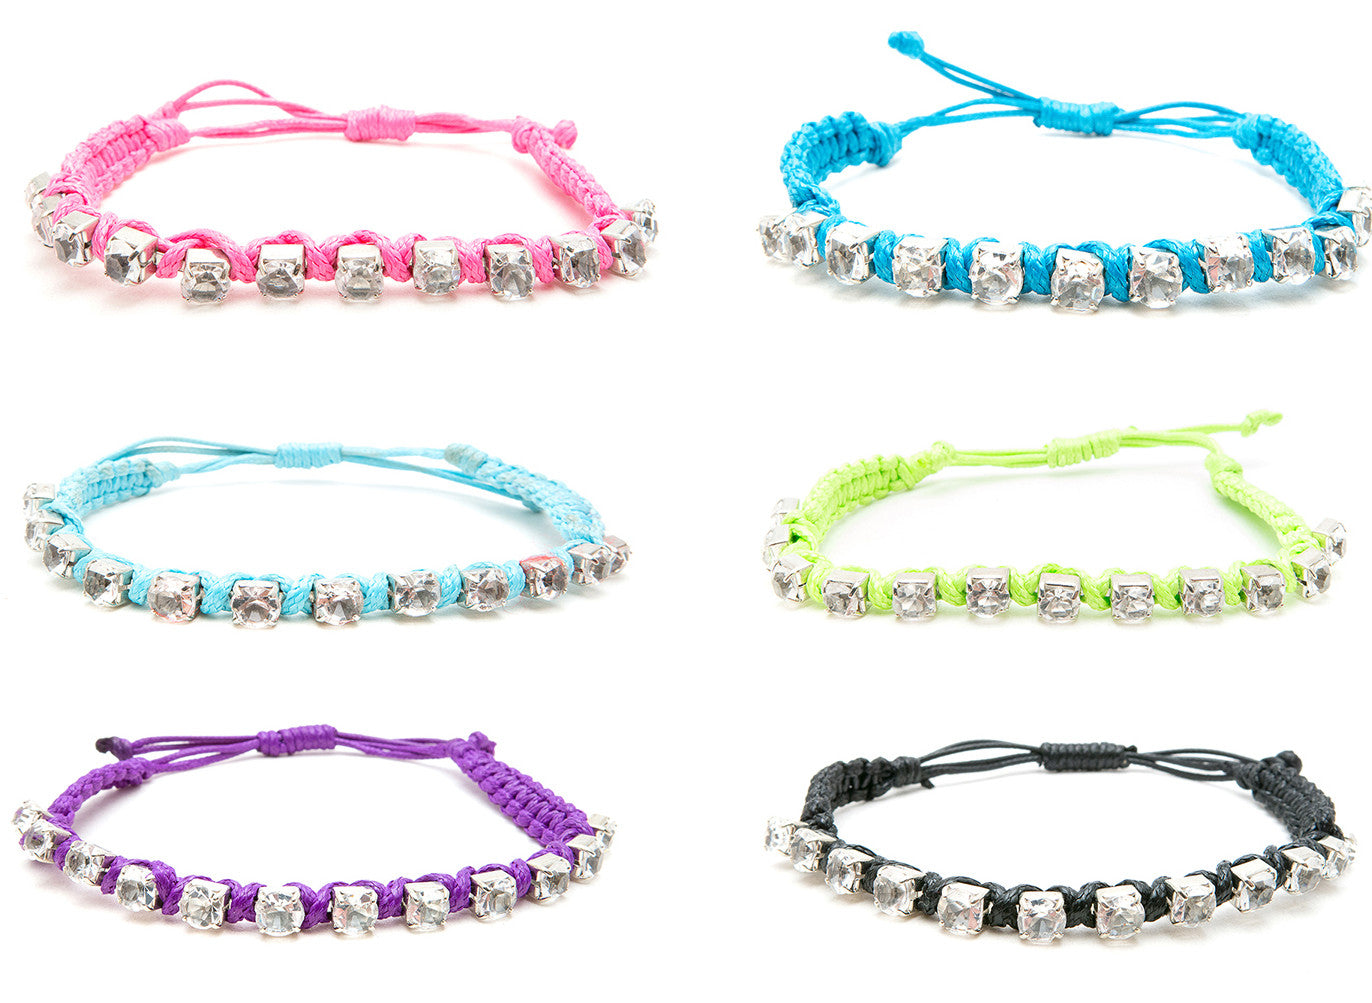 RFC938B Rhinestone Braid Cord Adjustable Slip-Knot Bracelet - 12 Pcs Pack Unit